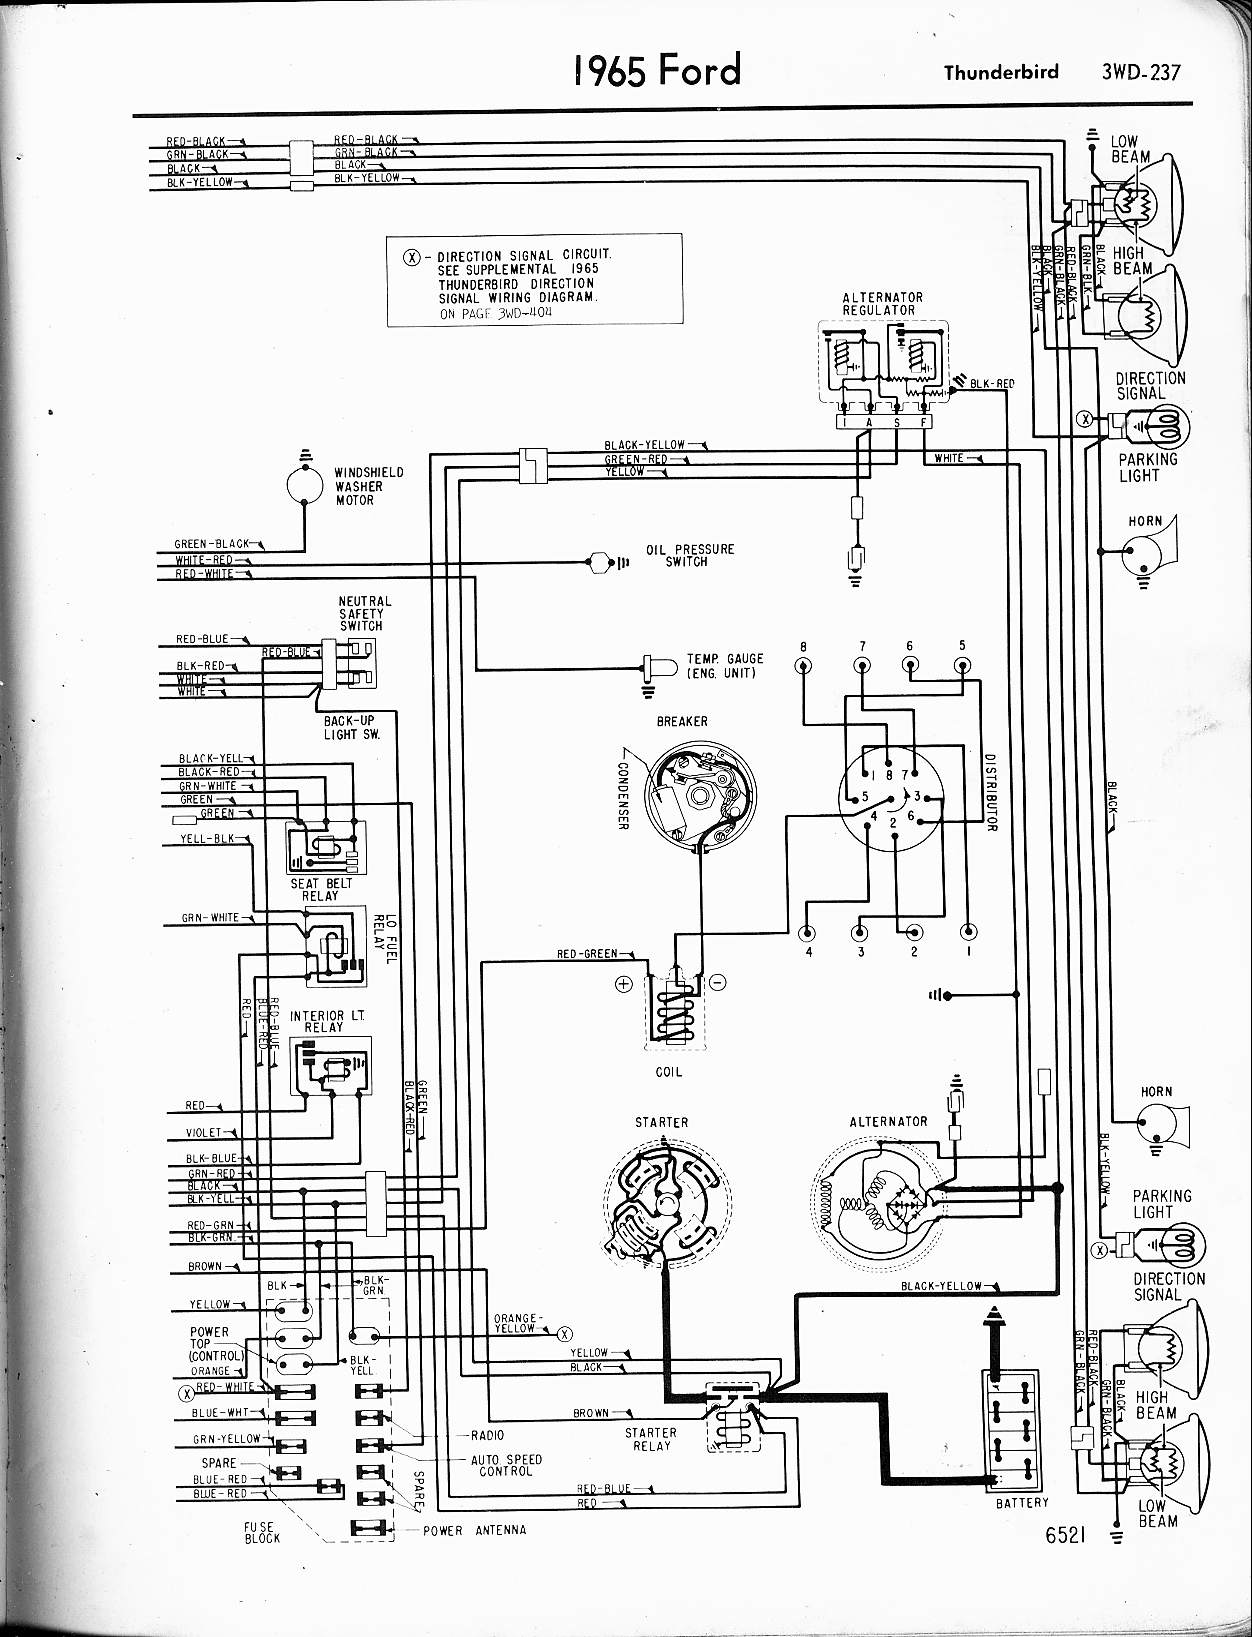 MWire5765 237 56 ford truck wiring diagram 56 wiring diagrams instruction 1965 ford thunderbird wiring harness at edmiracle.co